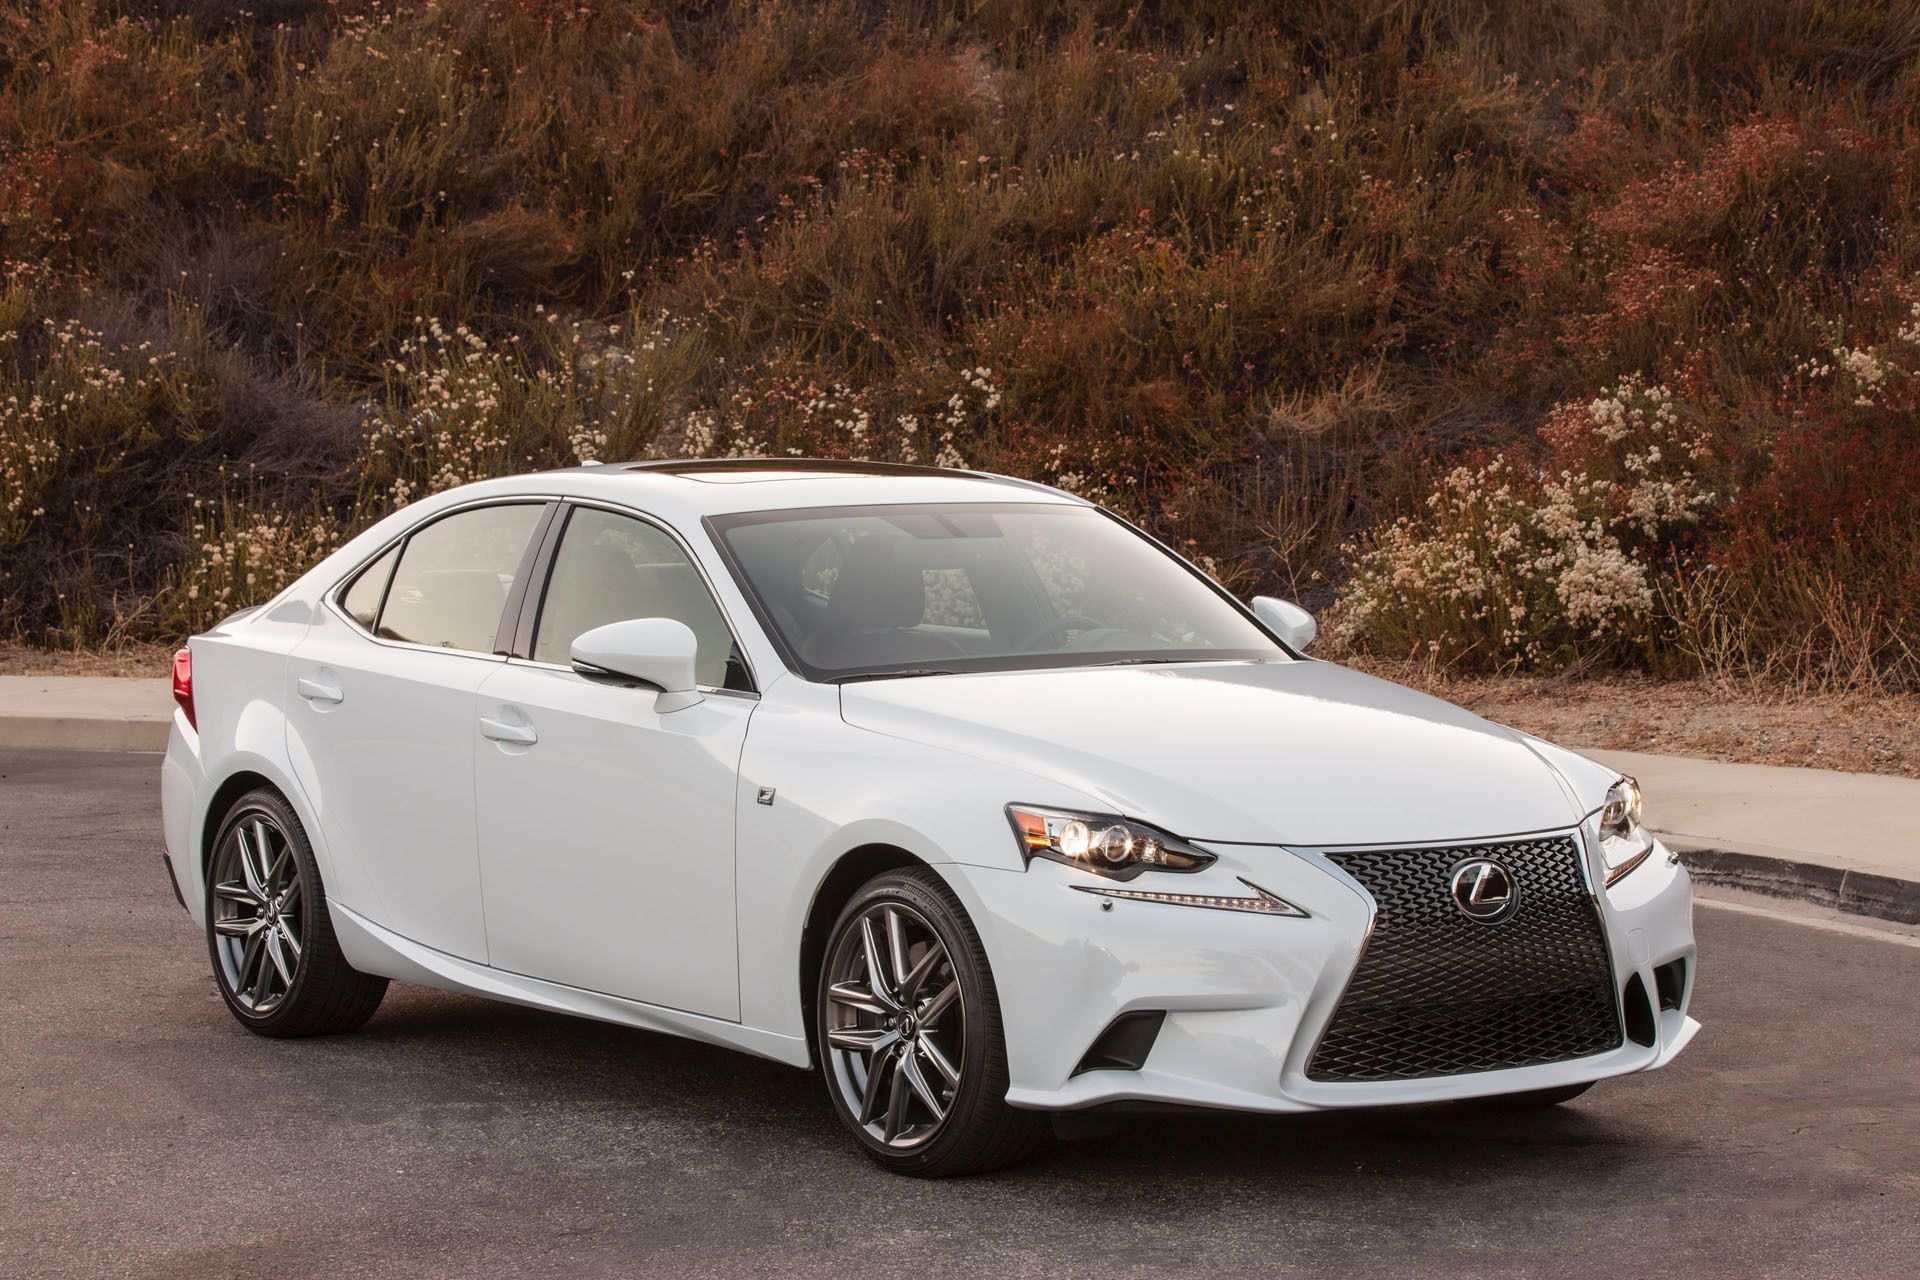 91 All New Lexus Es Awd 2020 Images